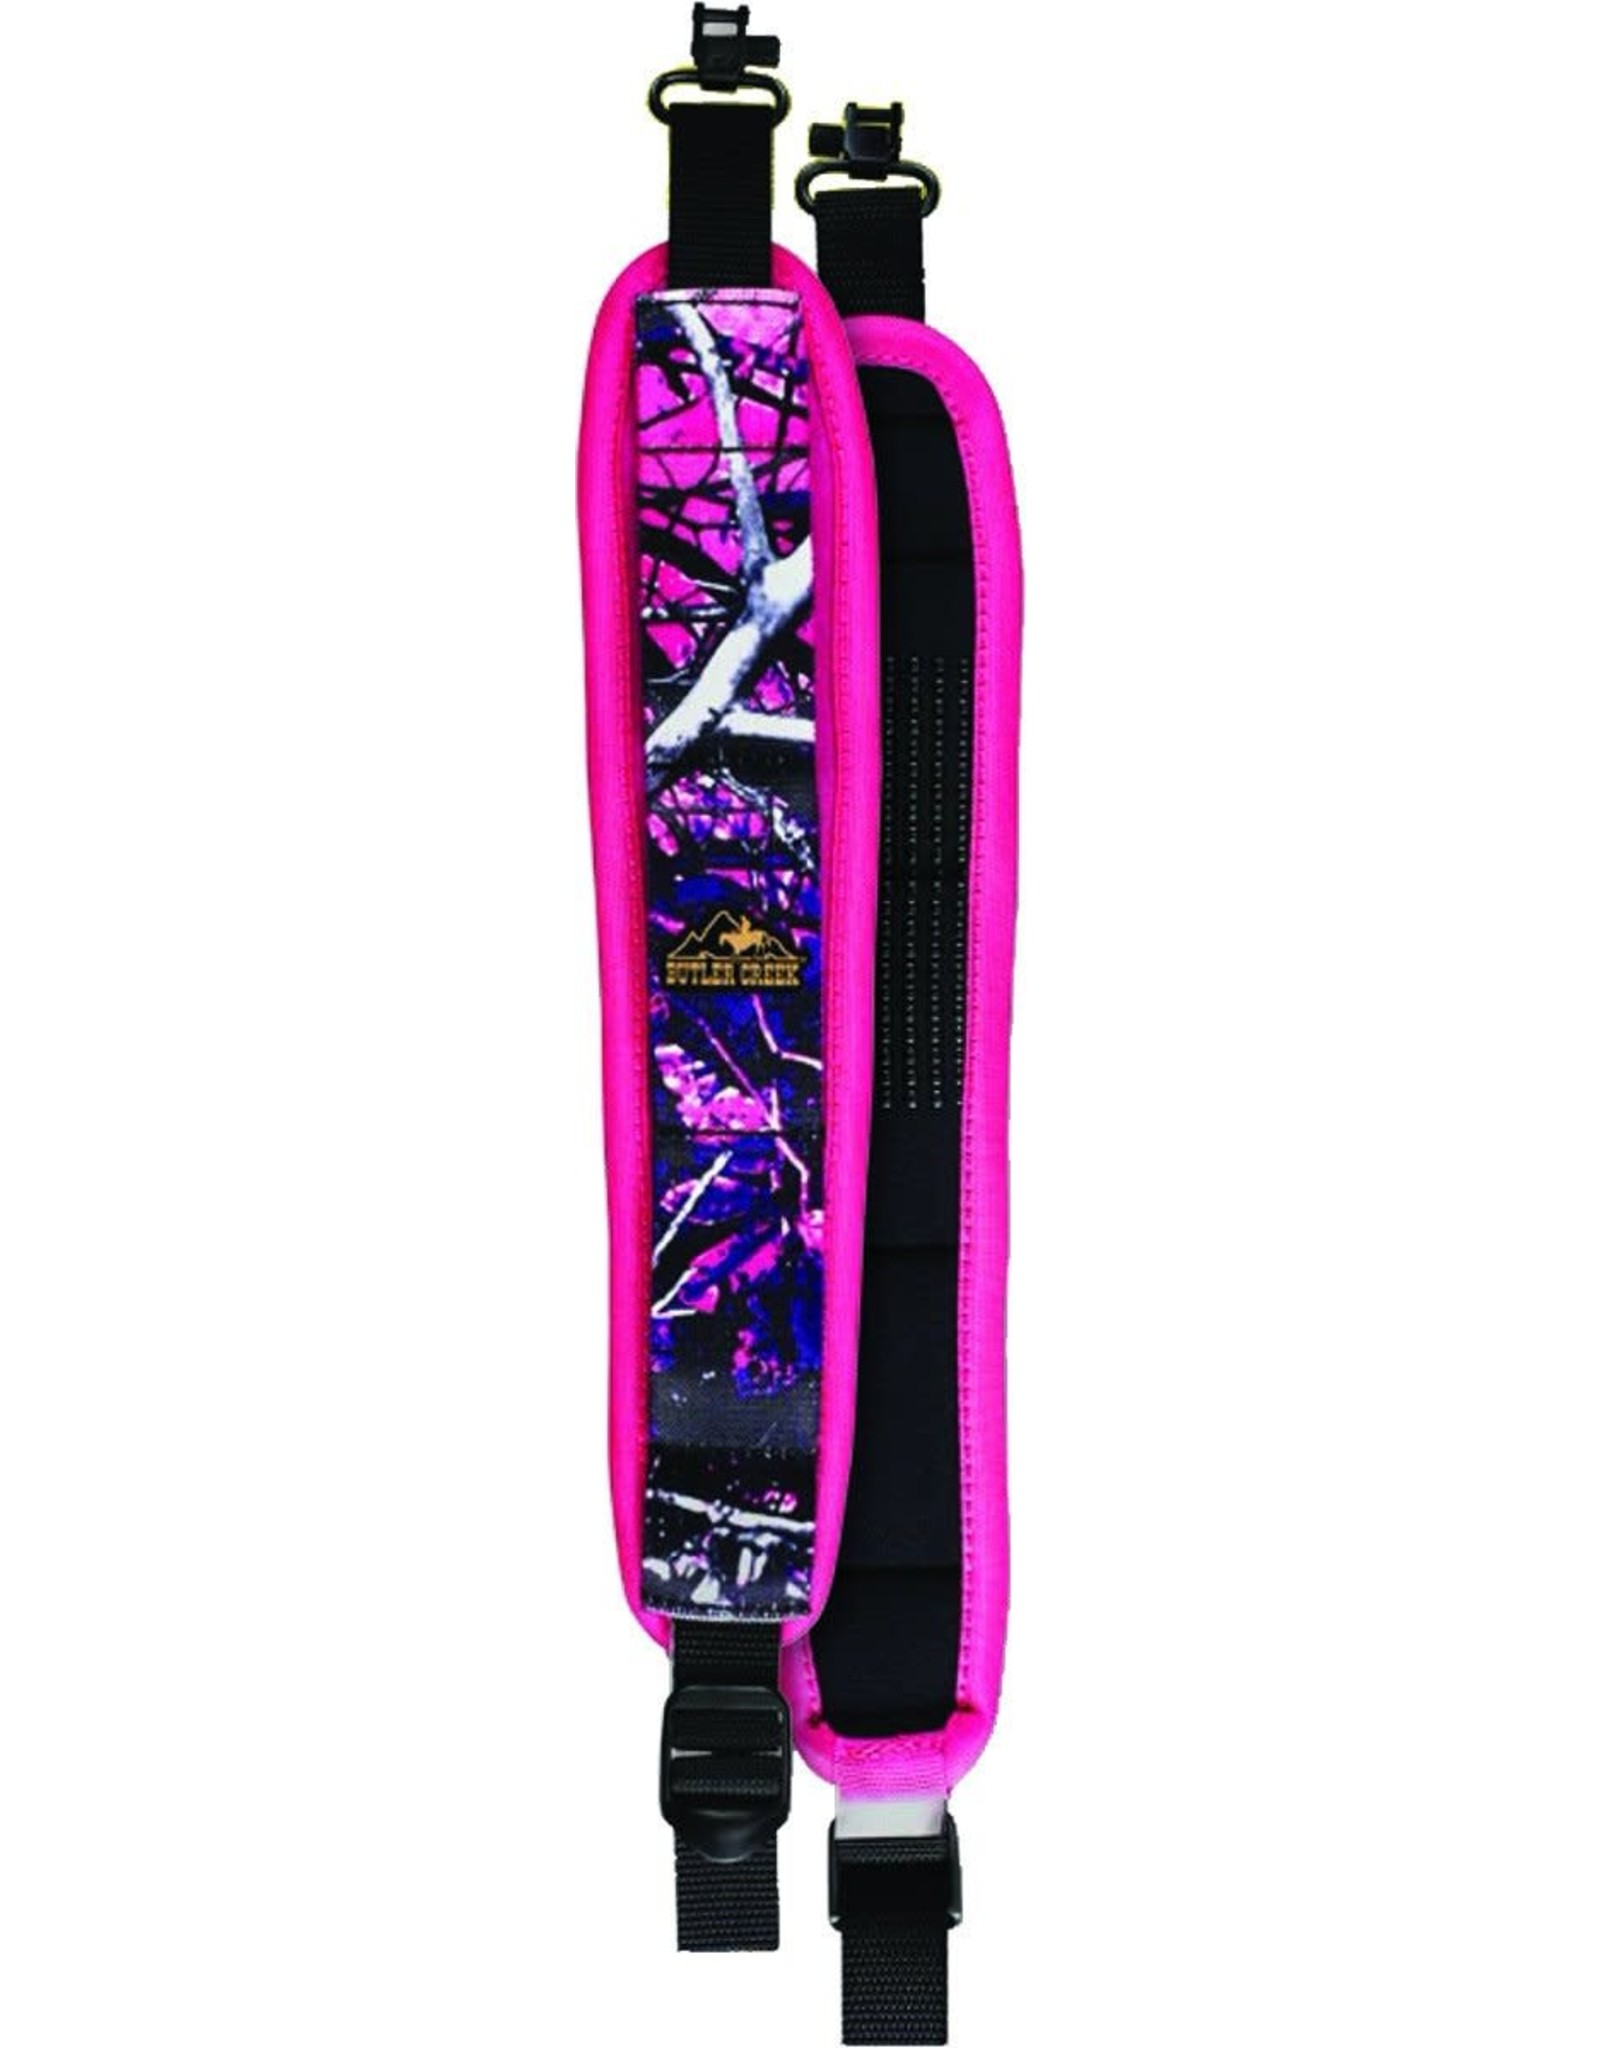 BUTLER CREEK Butler Creek Rifle Sling w/ Swivels Muddy Girl